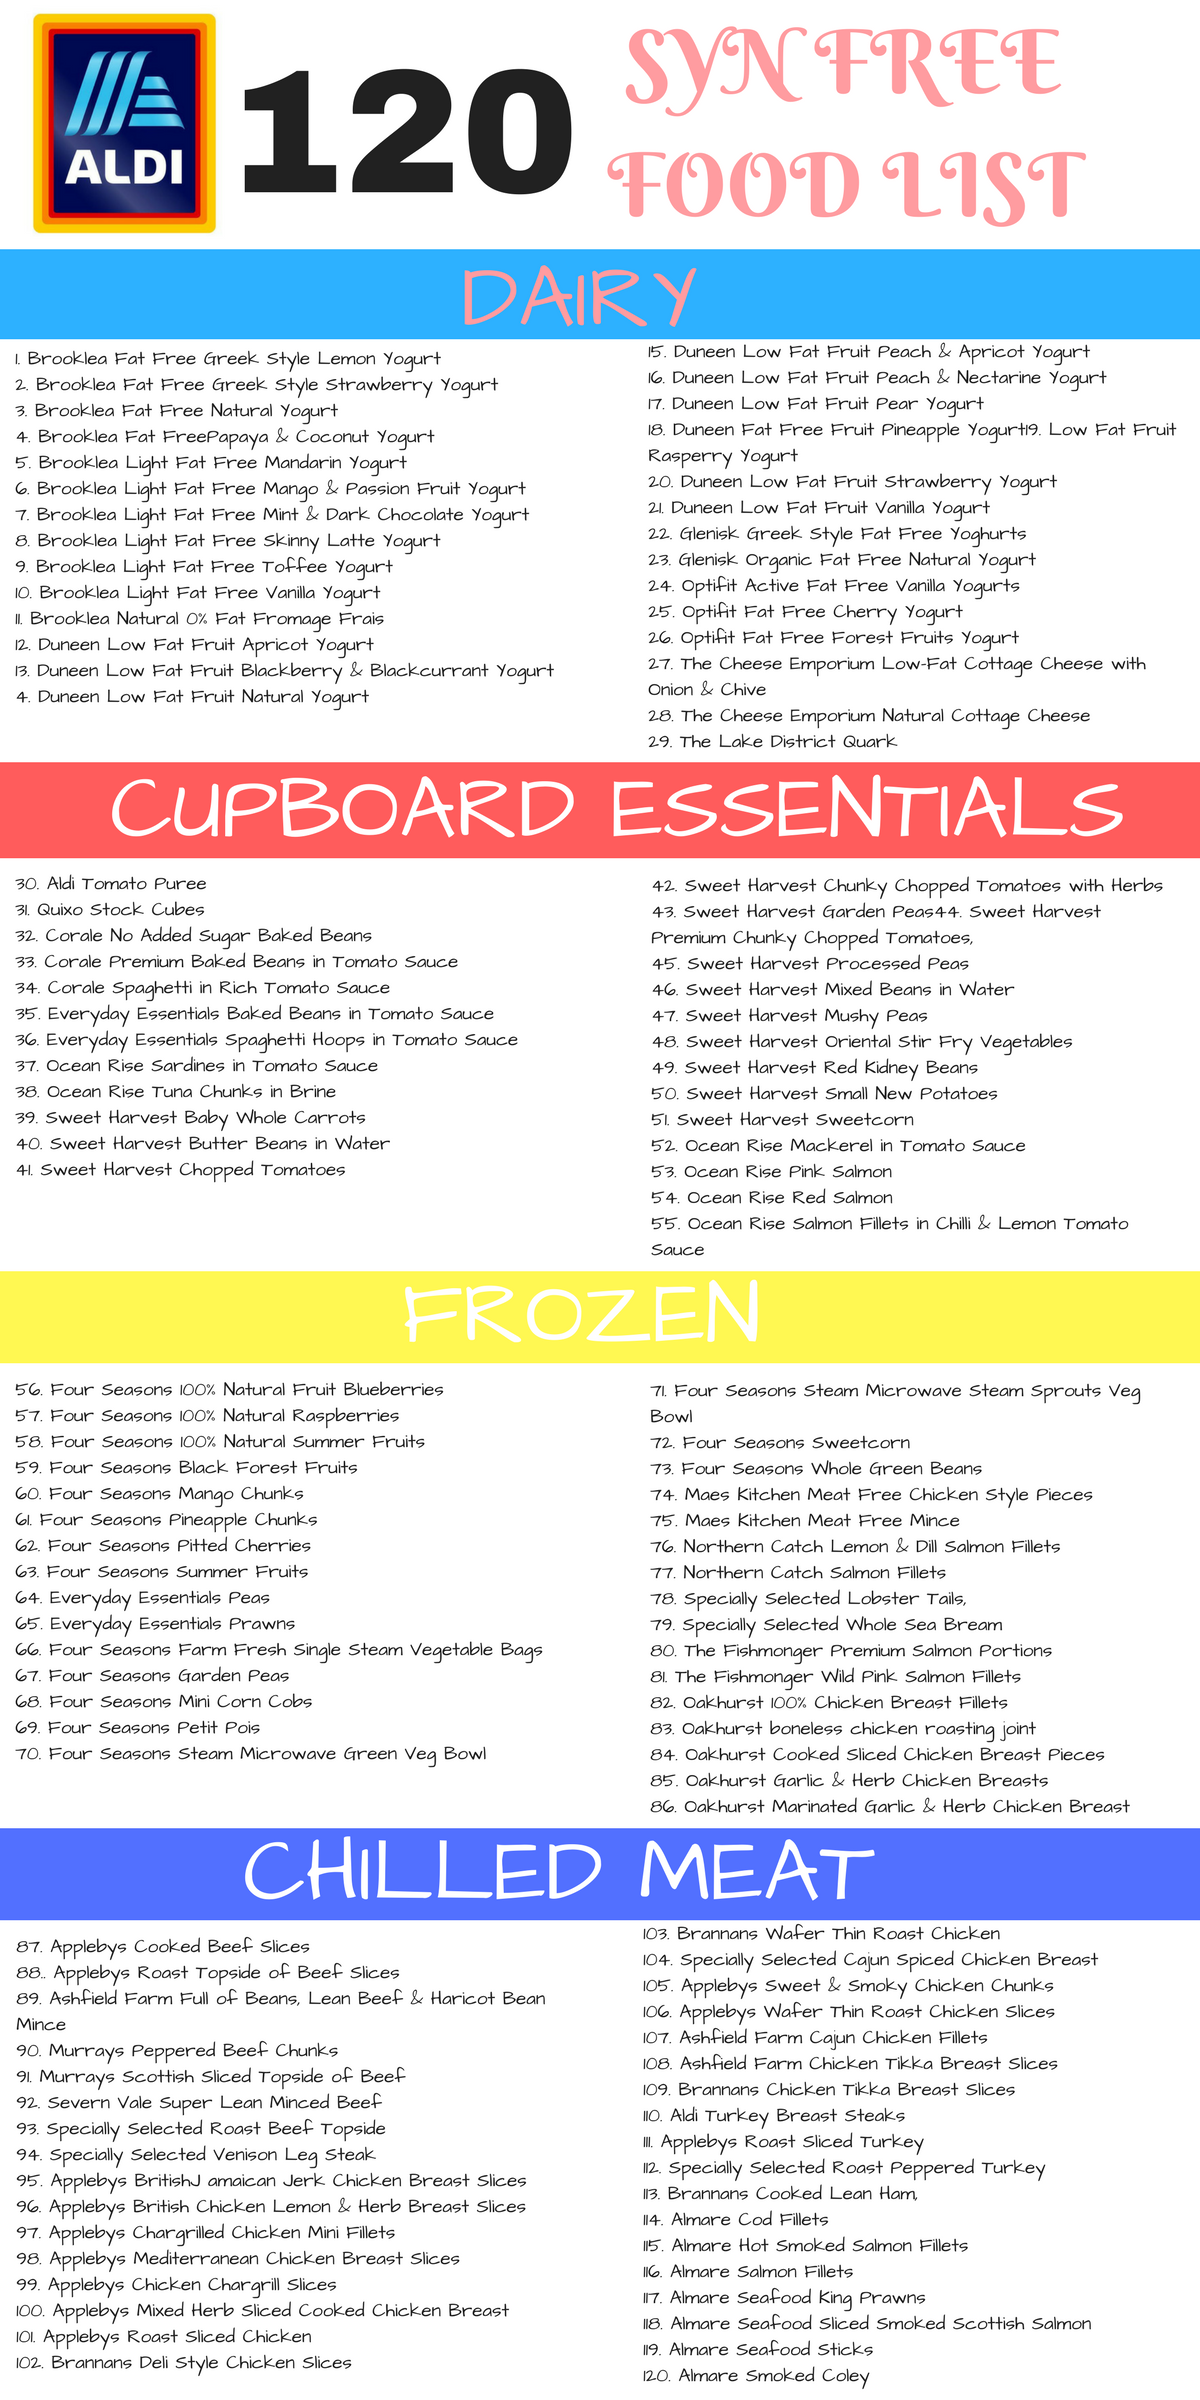 Here are 120 Aldi Syn free Slimming World shopping list. For over 300 budget Aldi items and a FREE meal plan printable PLUS an easy and clear way to view low-syn items, read now. #AldiSlimmingWorld #BudgetShoppingList #AldiSynFree